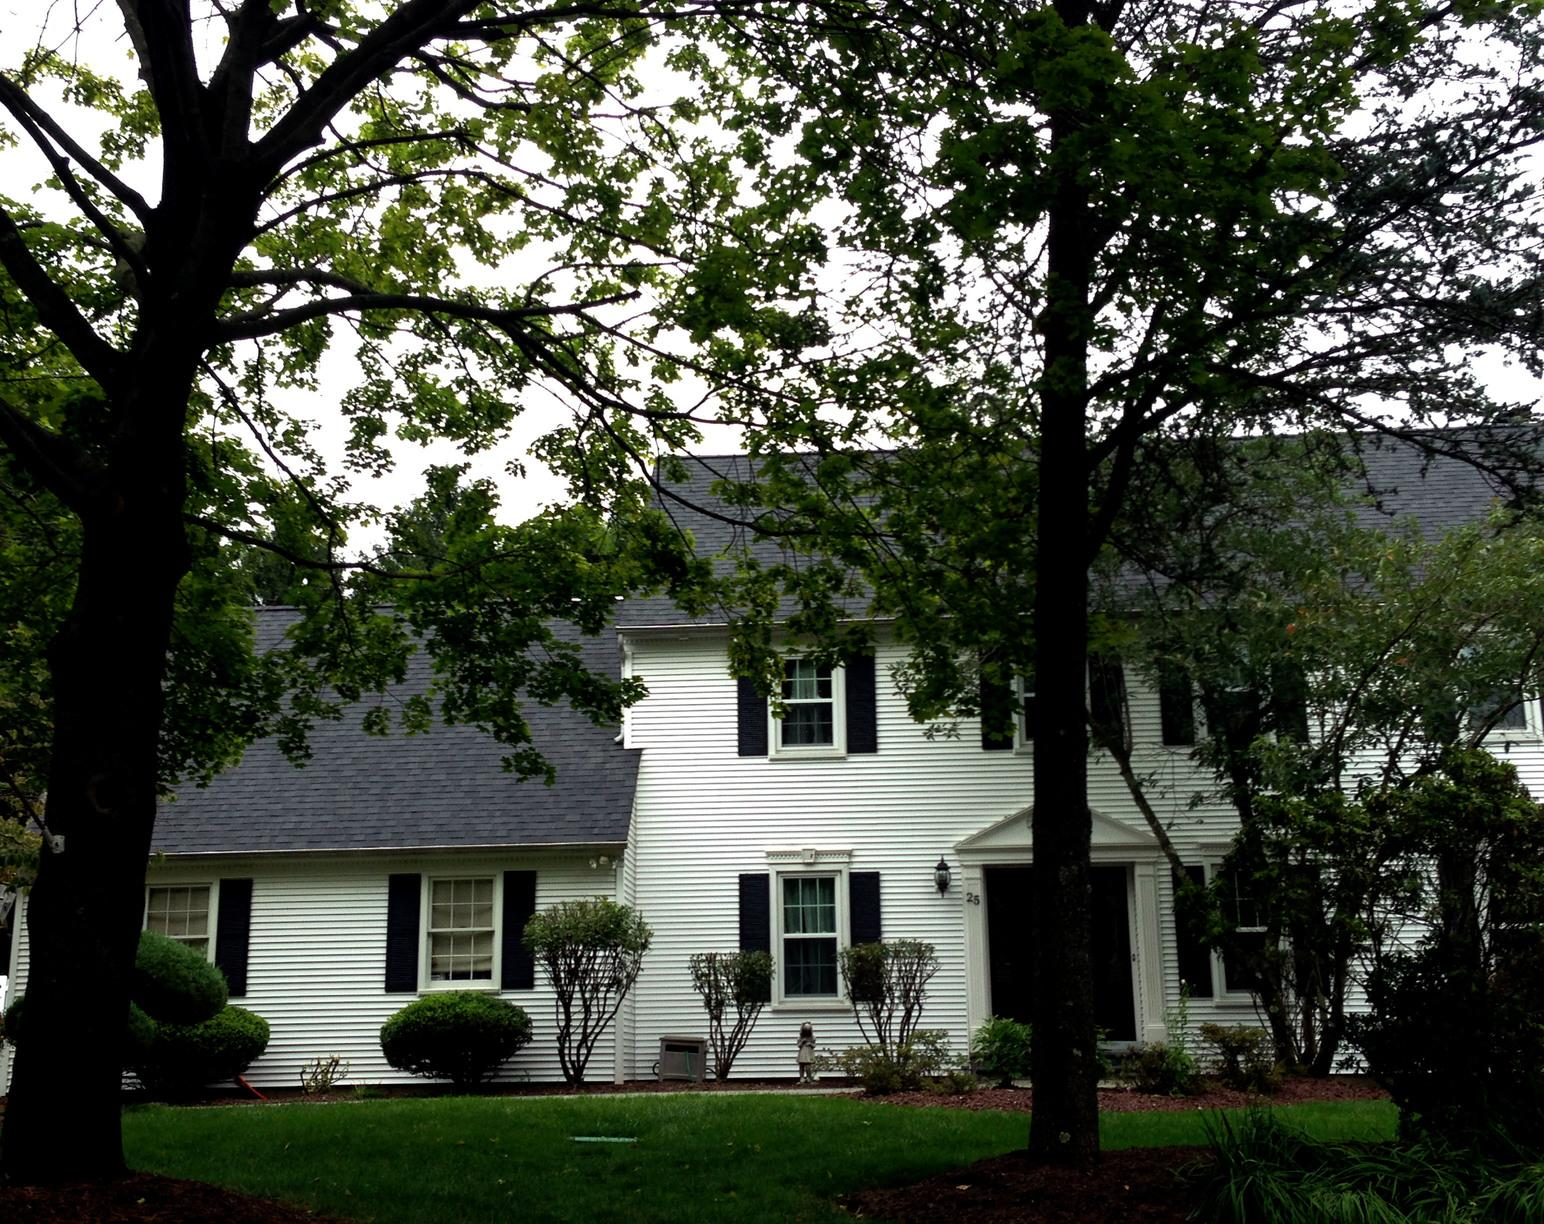 Holmdel NJ, New Roof Install - After Photo